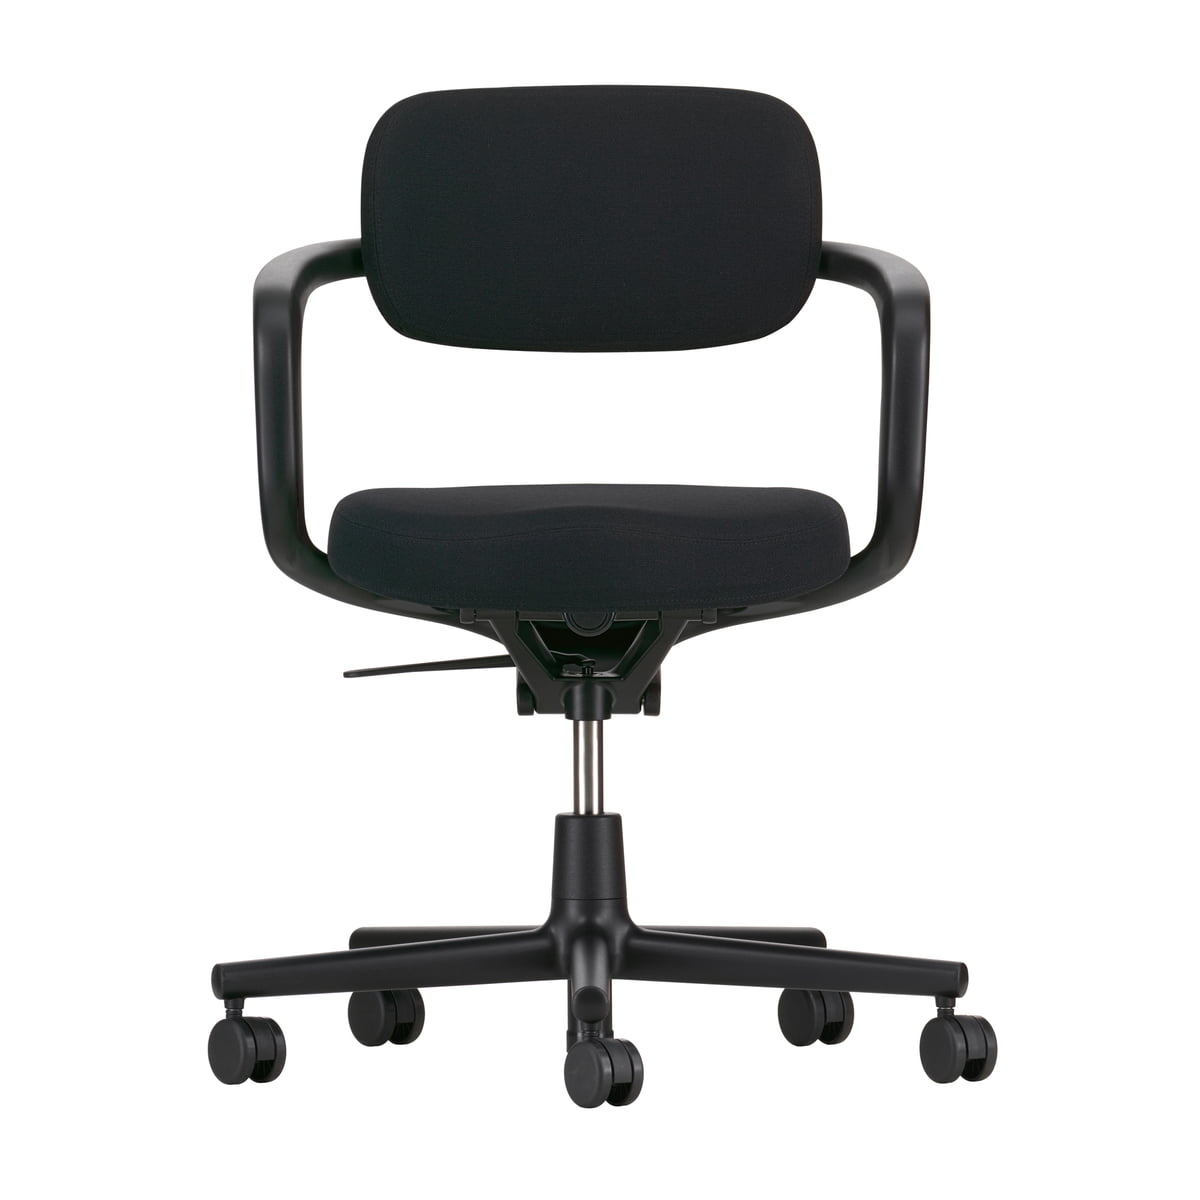 vitra ergonomic chair stokke high cushion instructions the allstar office by